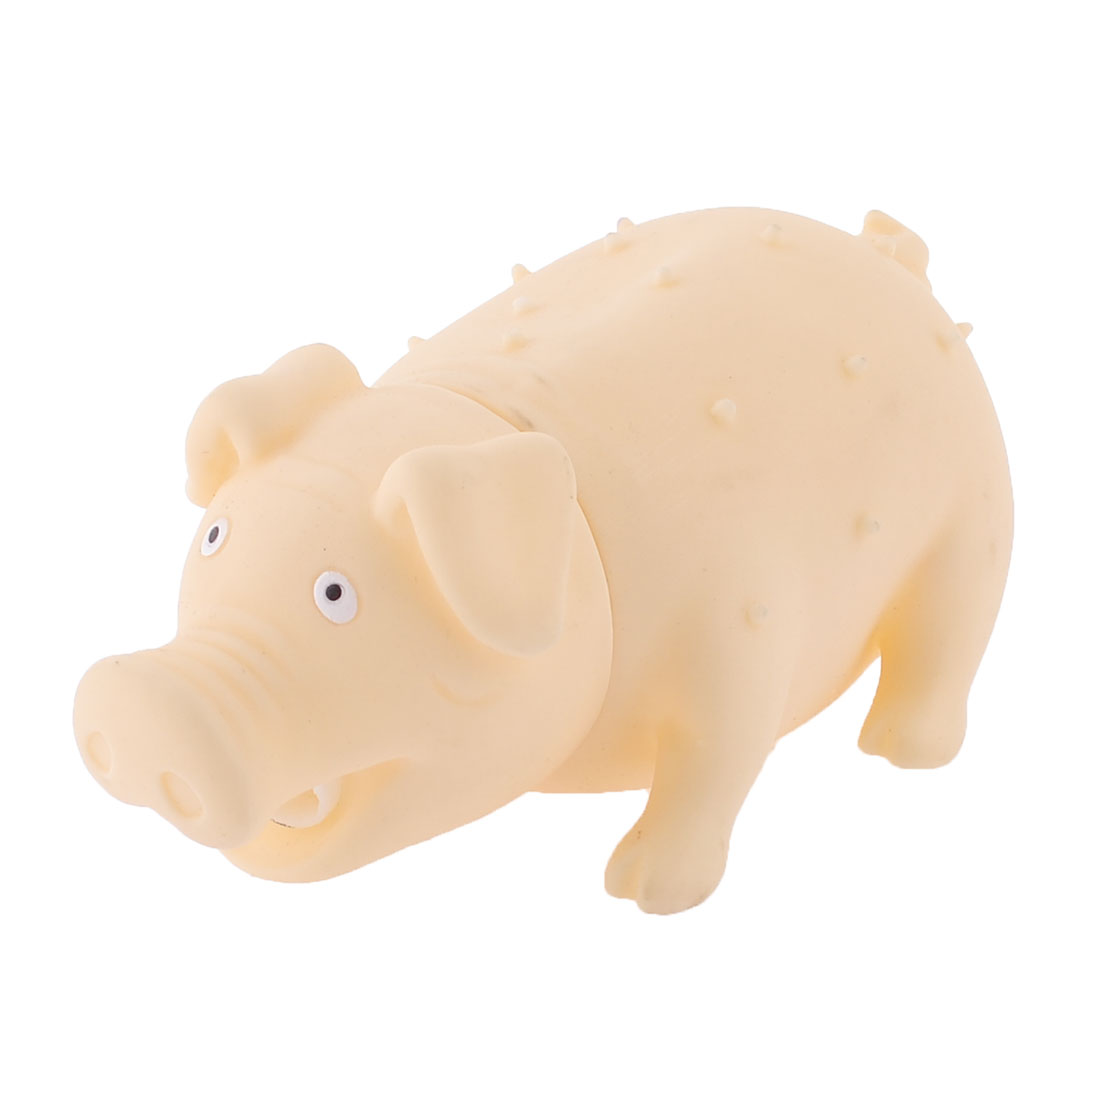 Textured Pig Design Squeaky Chew Playing Toy Beige for Pet Dog Puppy